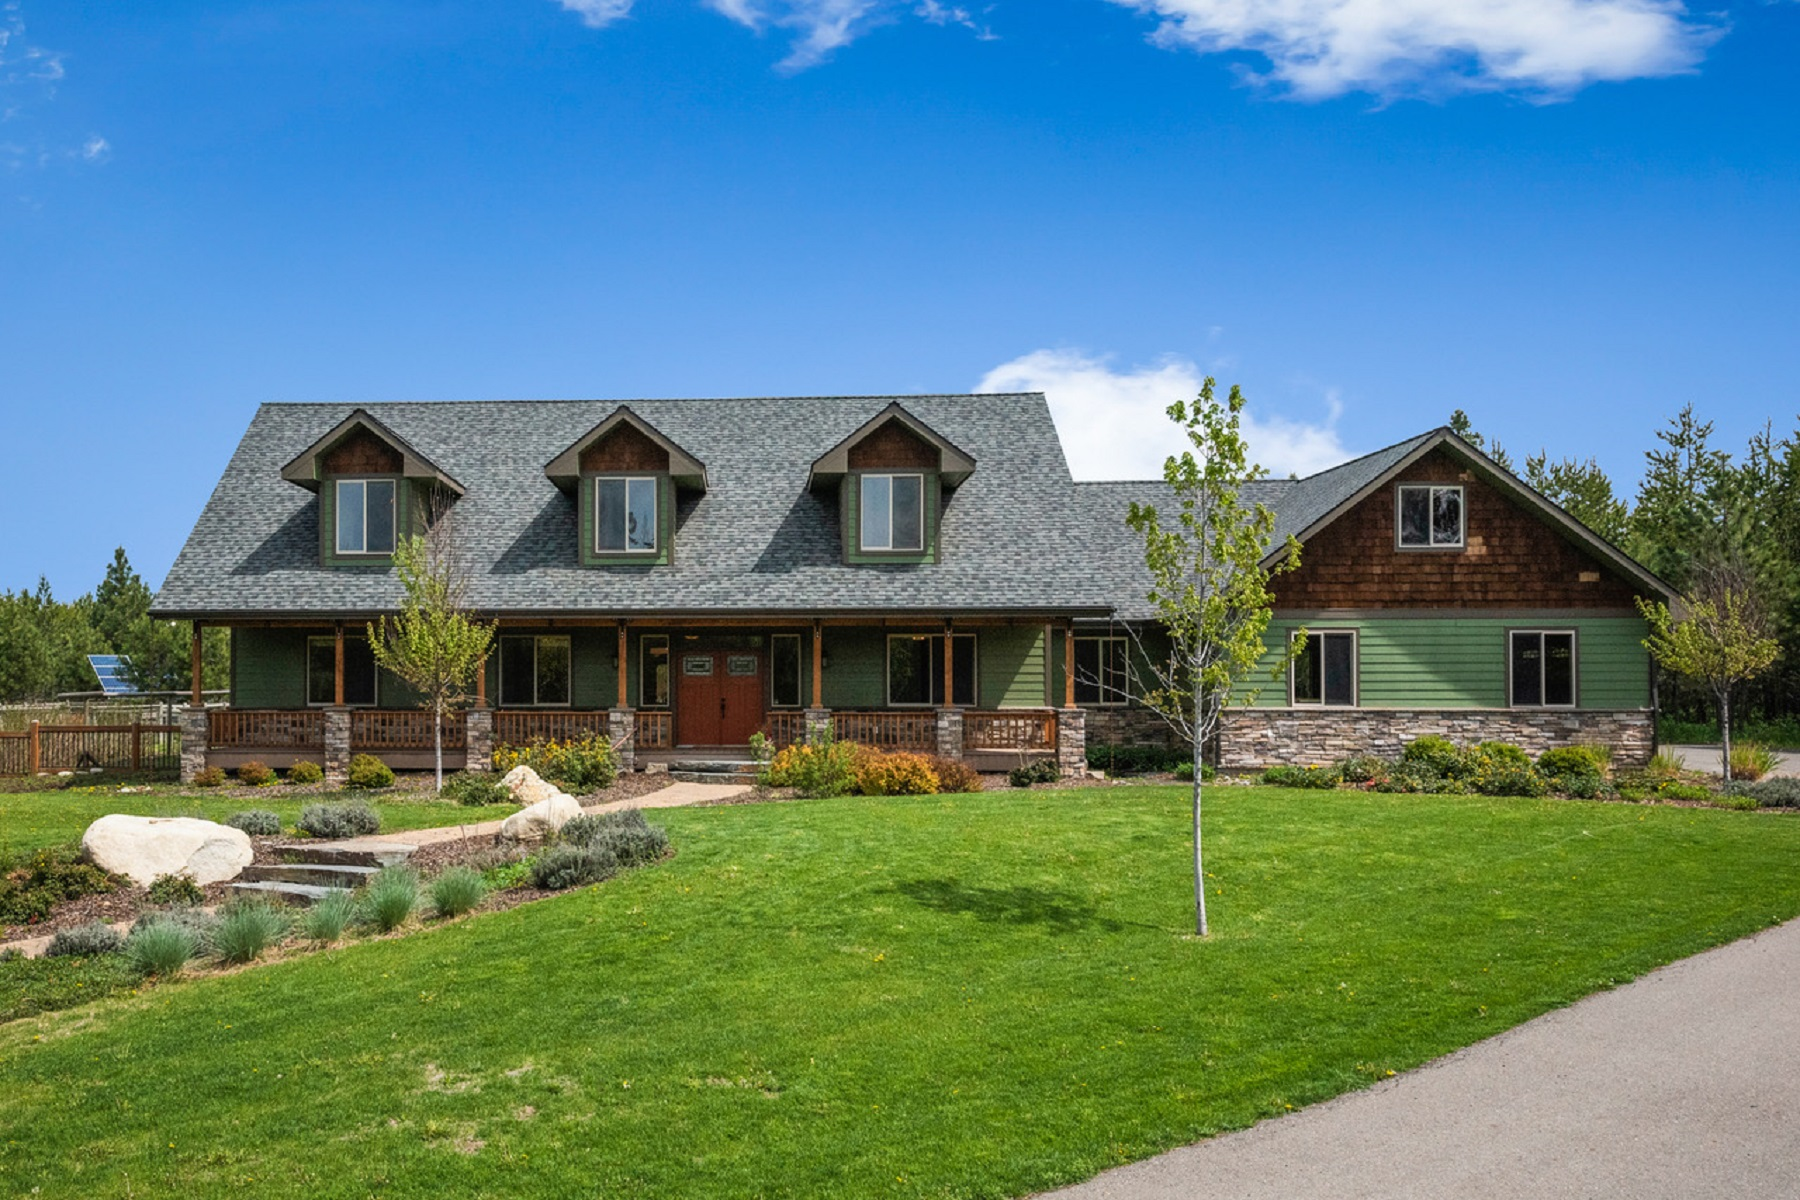 Single Family Home for Active at Amazing Property on 2135 W Chrisshan Ct. 2135 W Chrisshan Ct Rathdrum, Idaho 83858 United States